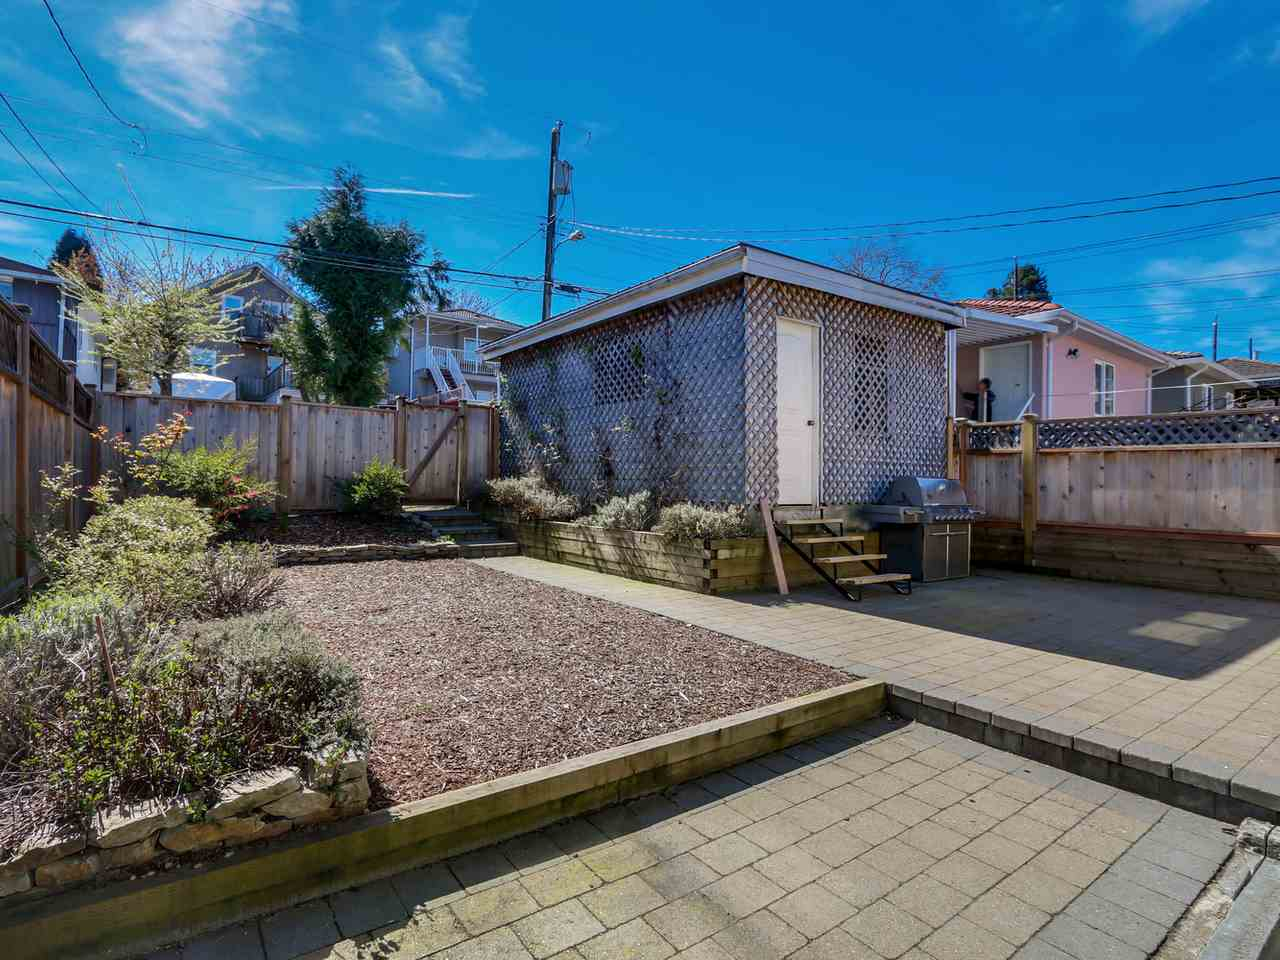 Photo 18: 2542 E 28TH AVENUE in Vancouver: Collingwood VE House for sale (Vancouver East)  : MLS® # R2052154